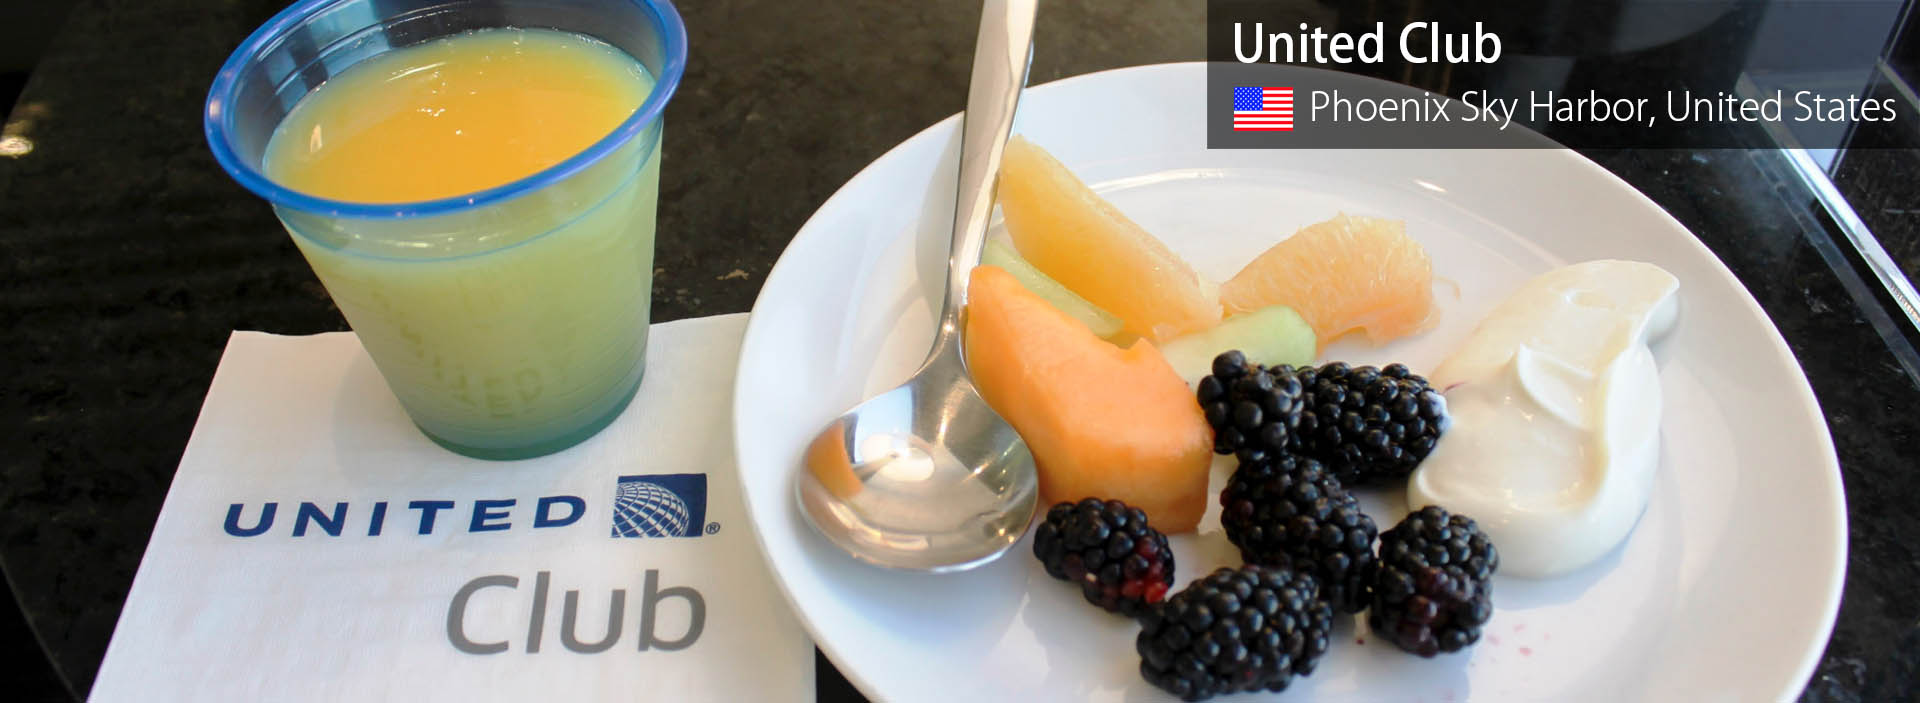 Lounge Review: United Club Lounge at Phoenix Sky Harbor